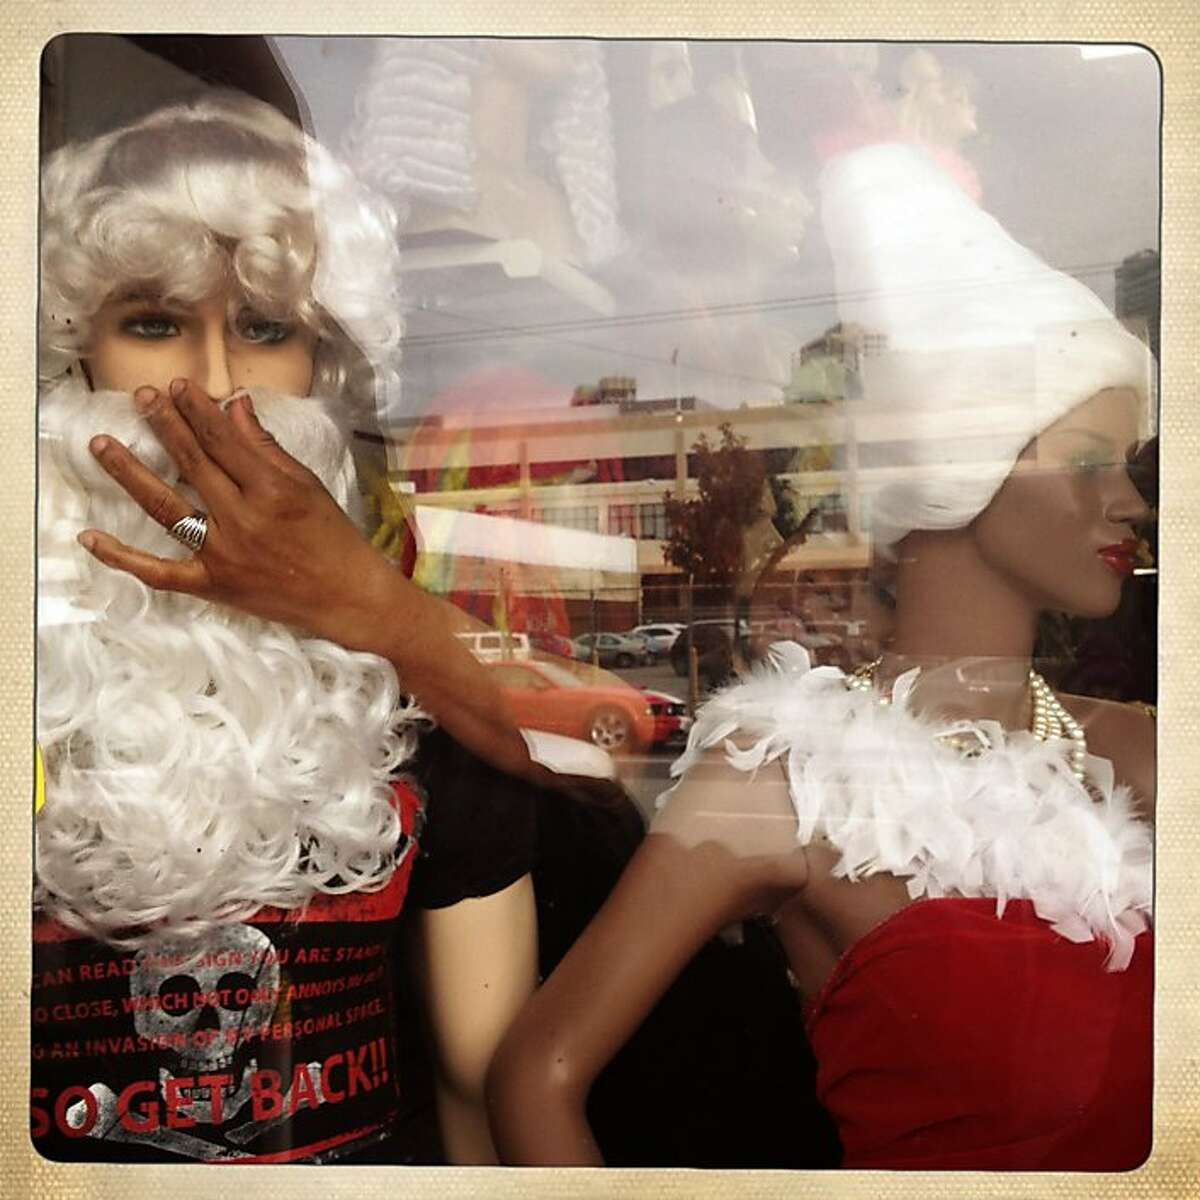 Beatrice Osunde adjusts a holiday display in the window of Trendy Hair Gallery and Beauty Supply on Thursday Dec. 21, 2012 in San Francisco, Calif.